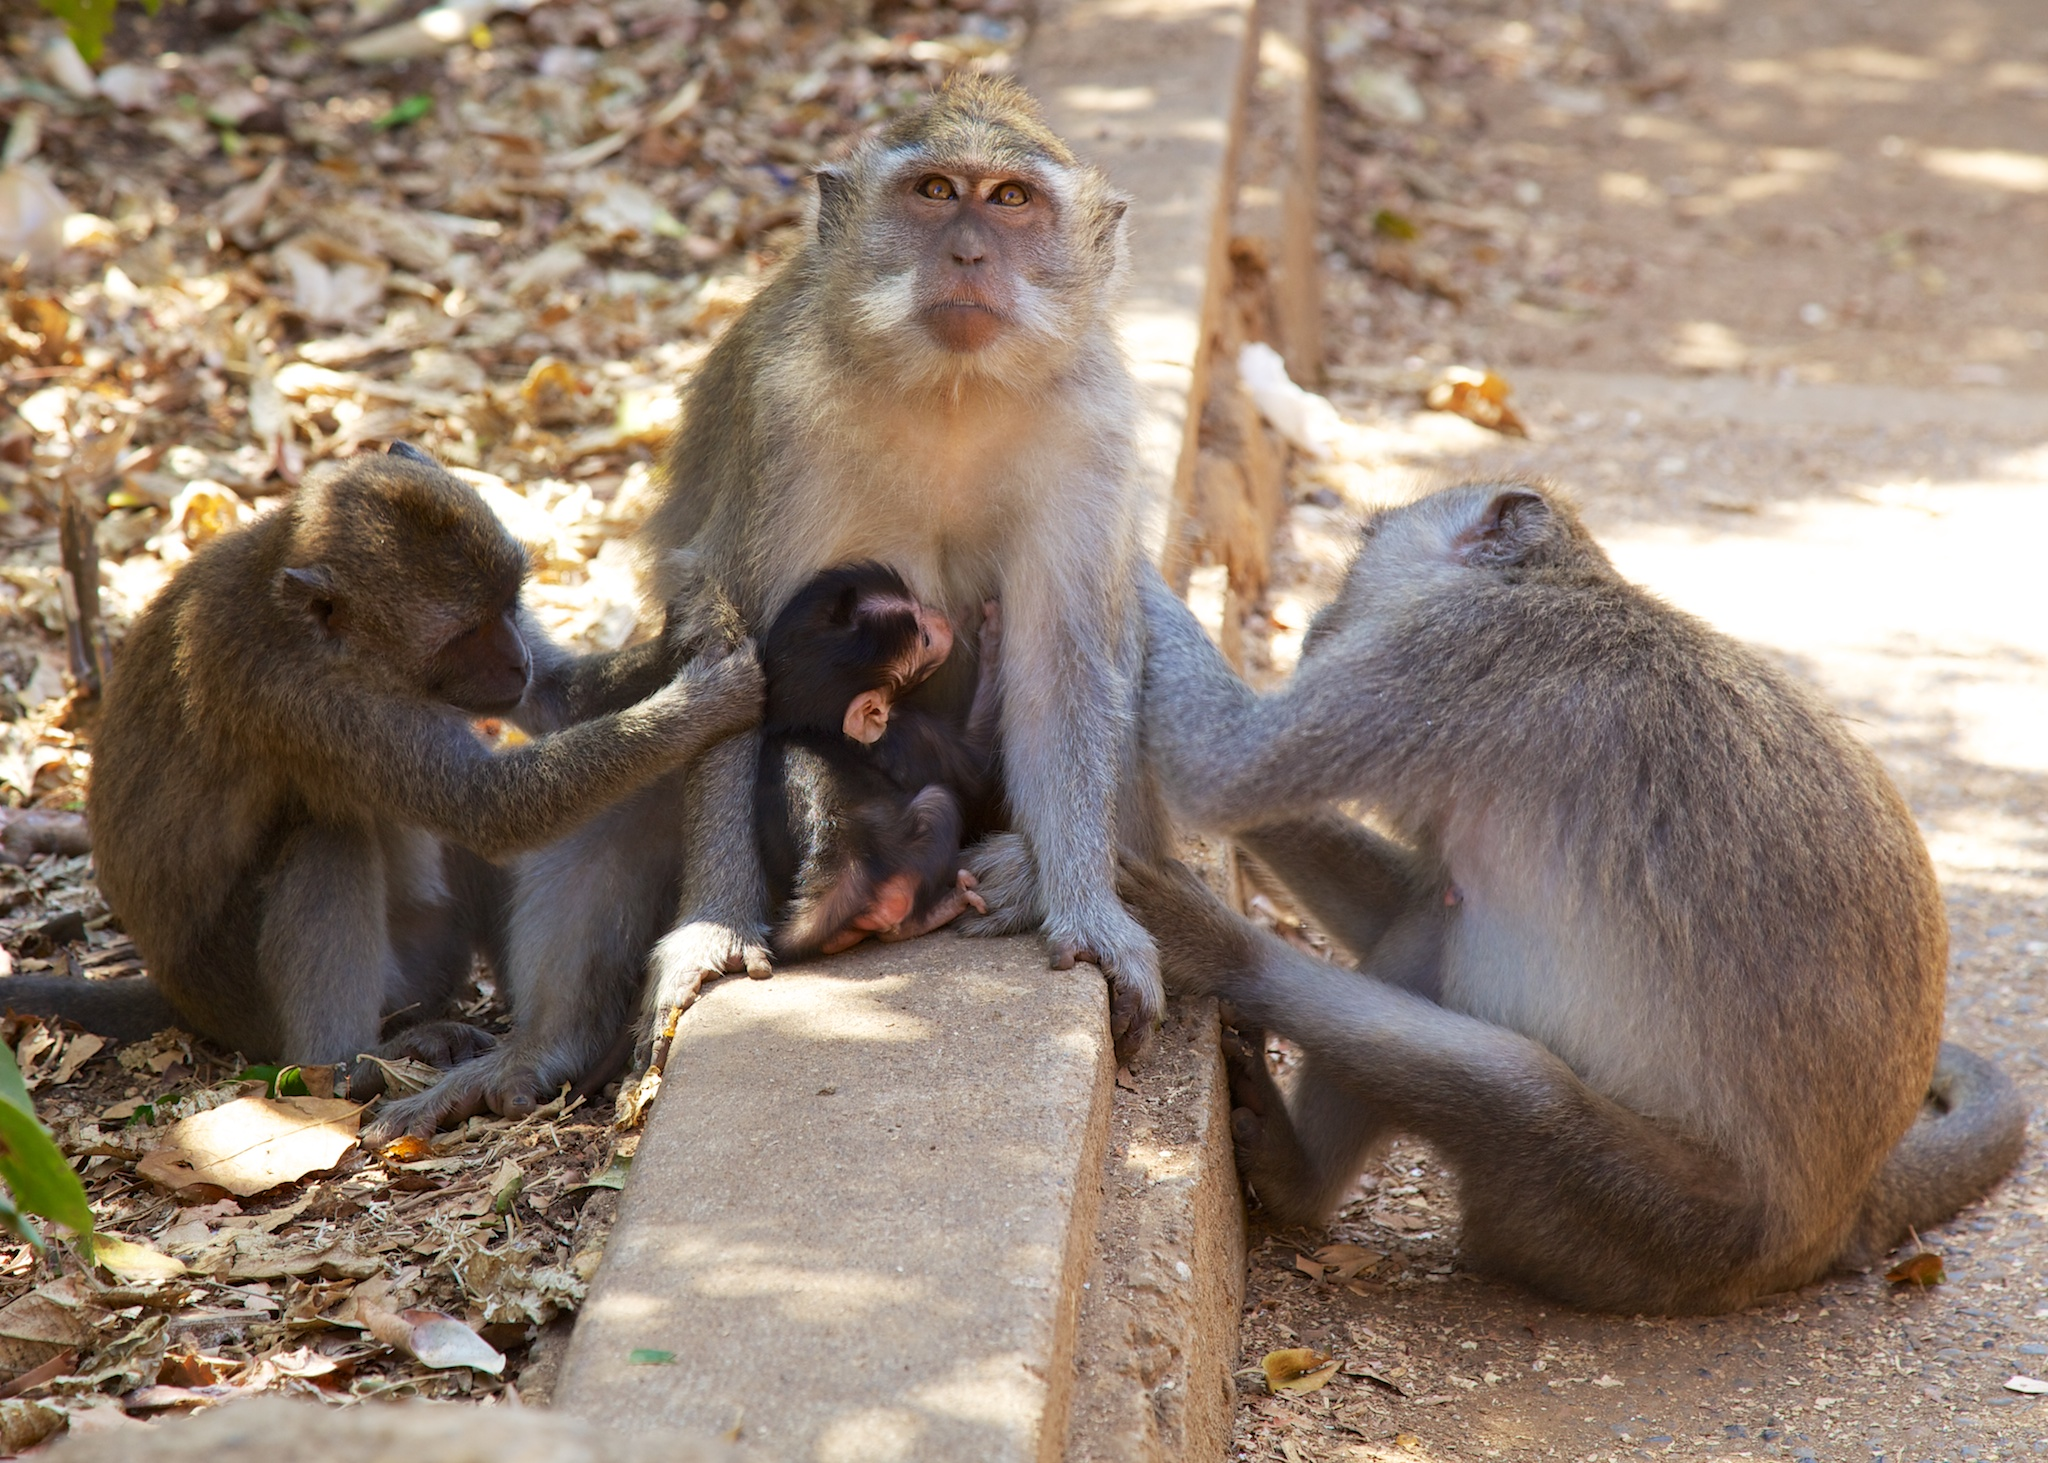 While cute, the monkeys are quite aggressive, and can cause some damage.